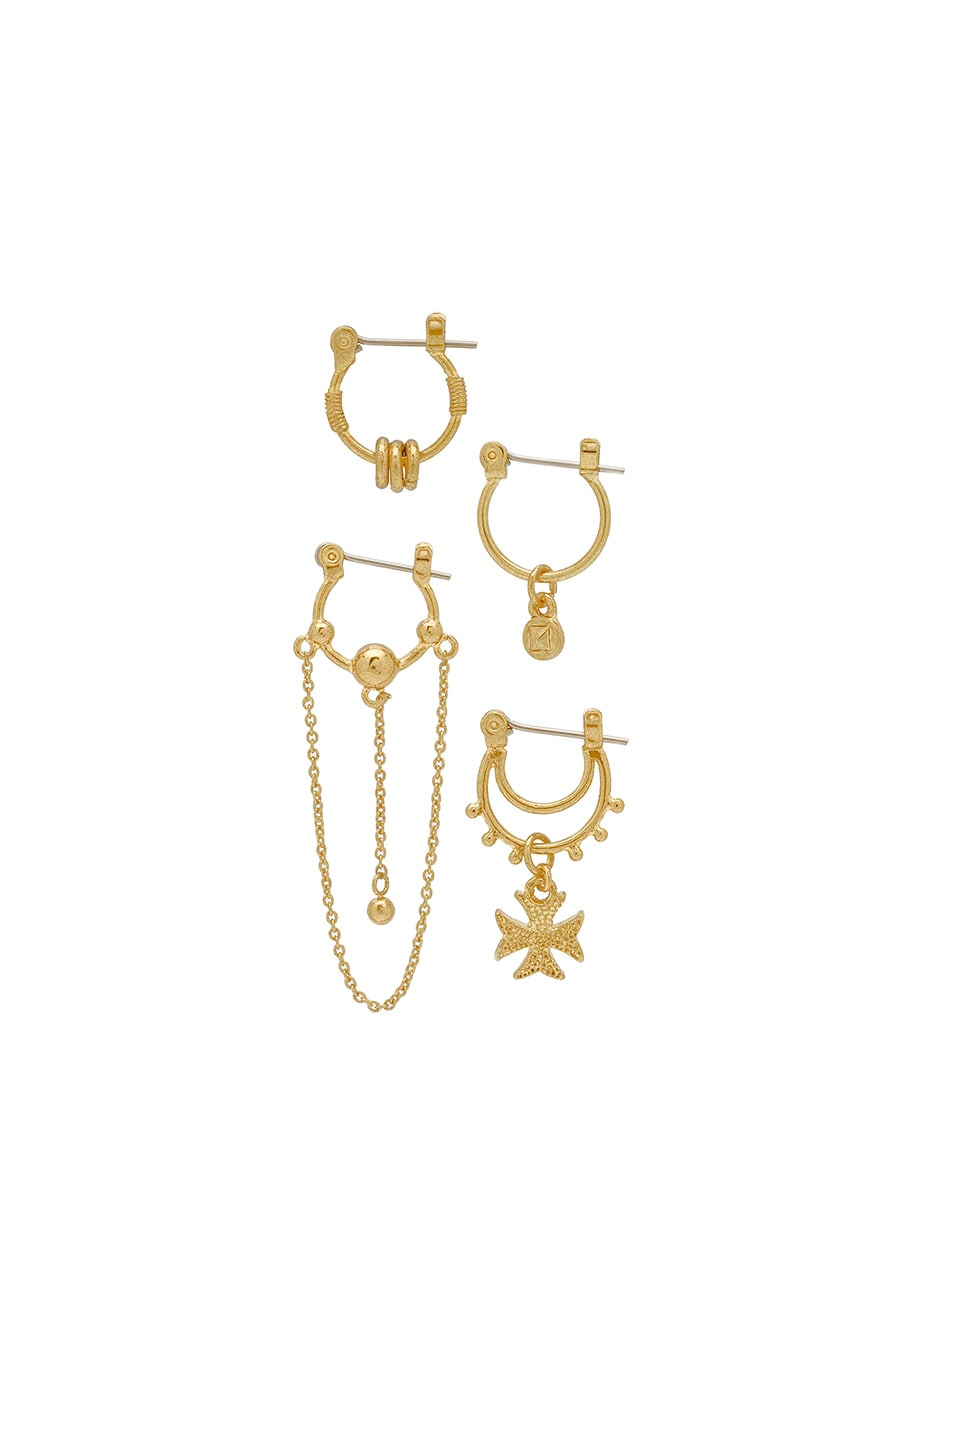 Luv AJ x SABO LUXE Heli Hoop Huggies Earring Set in Antique Gold